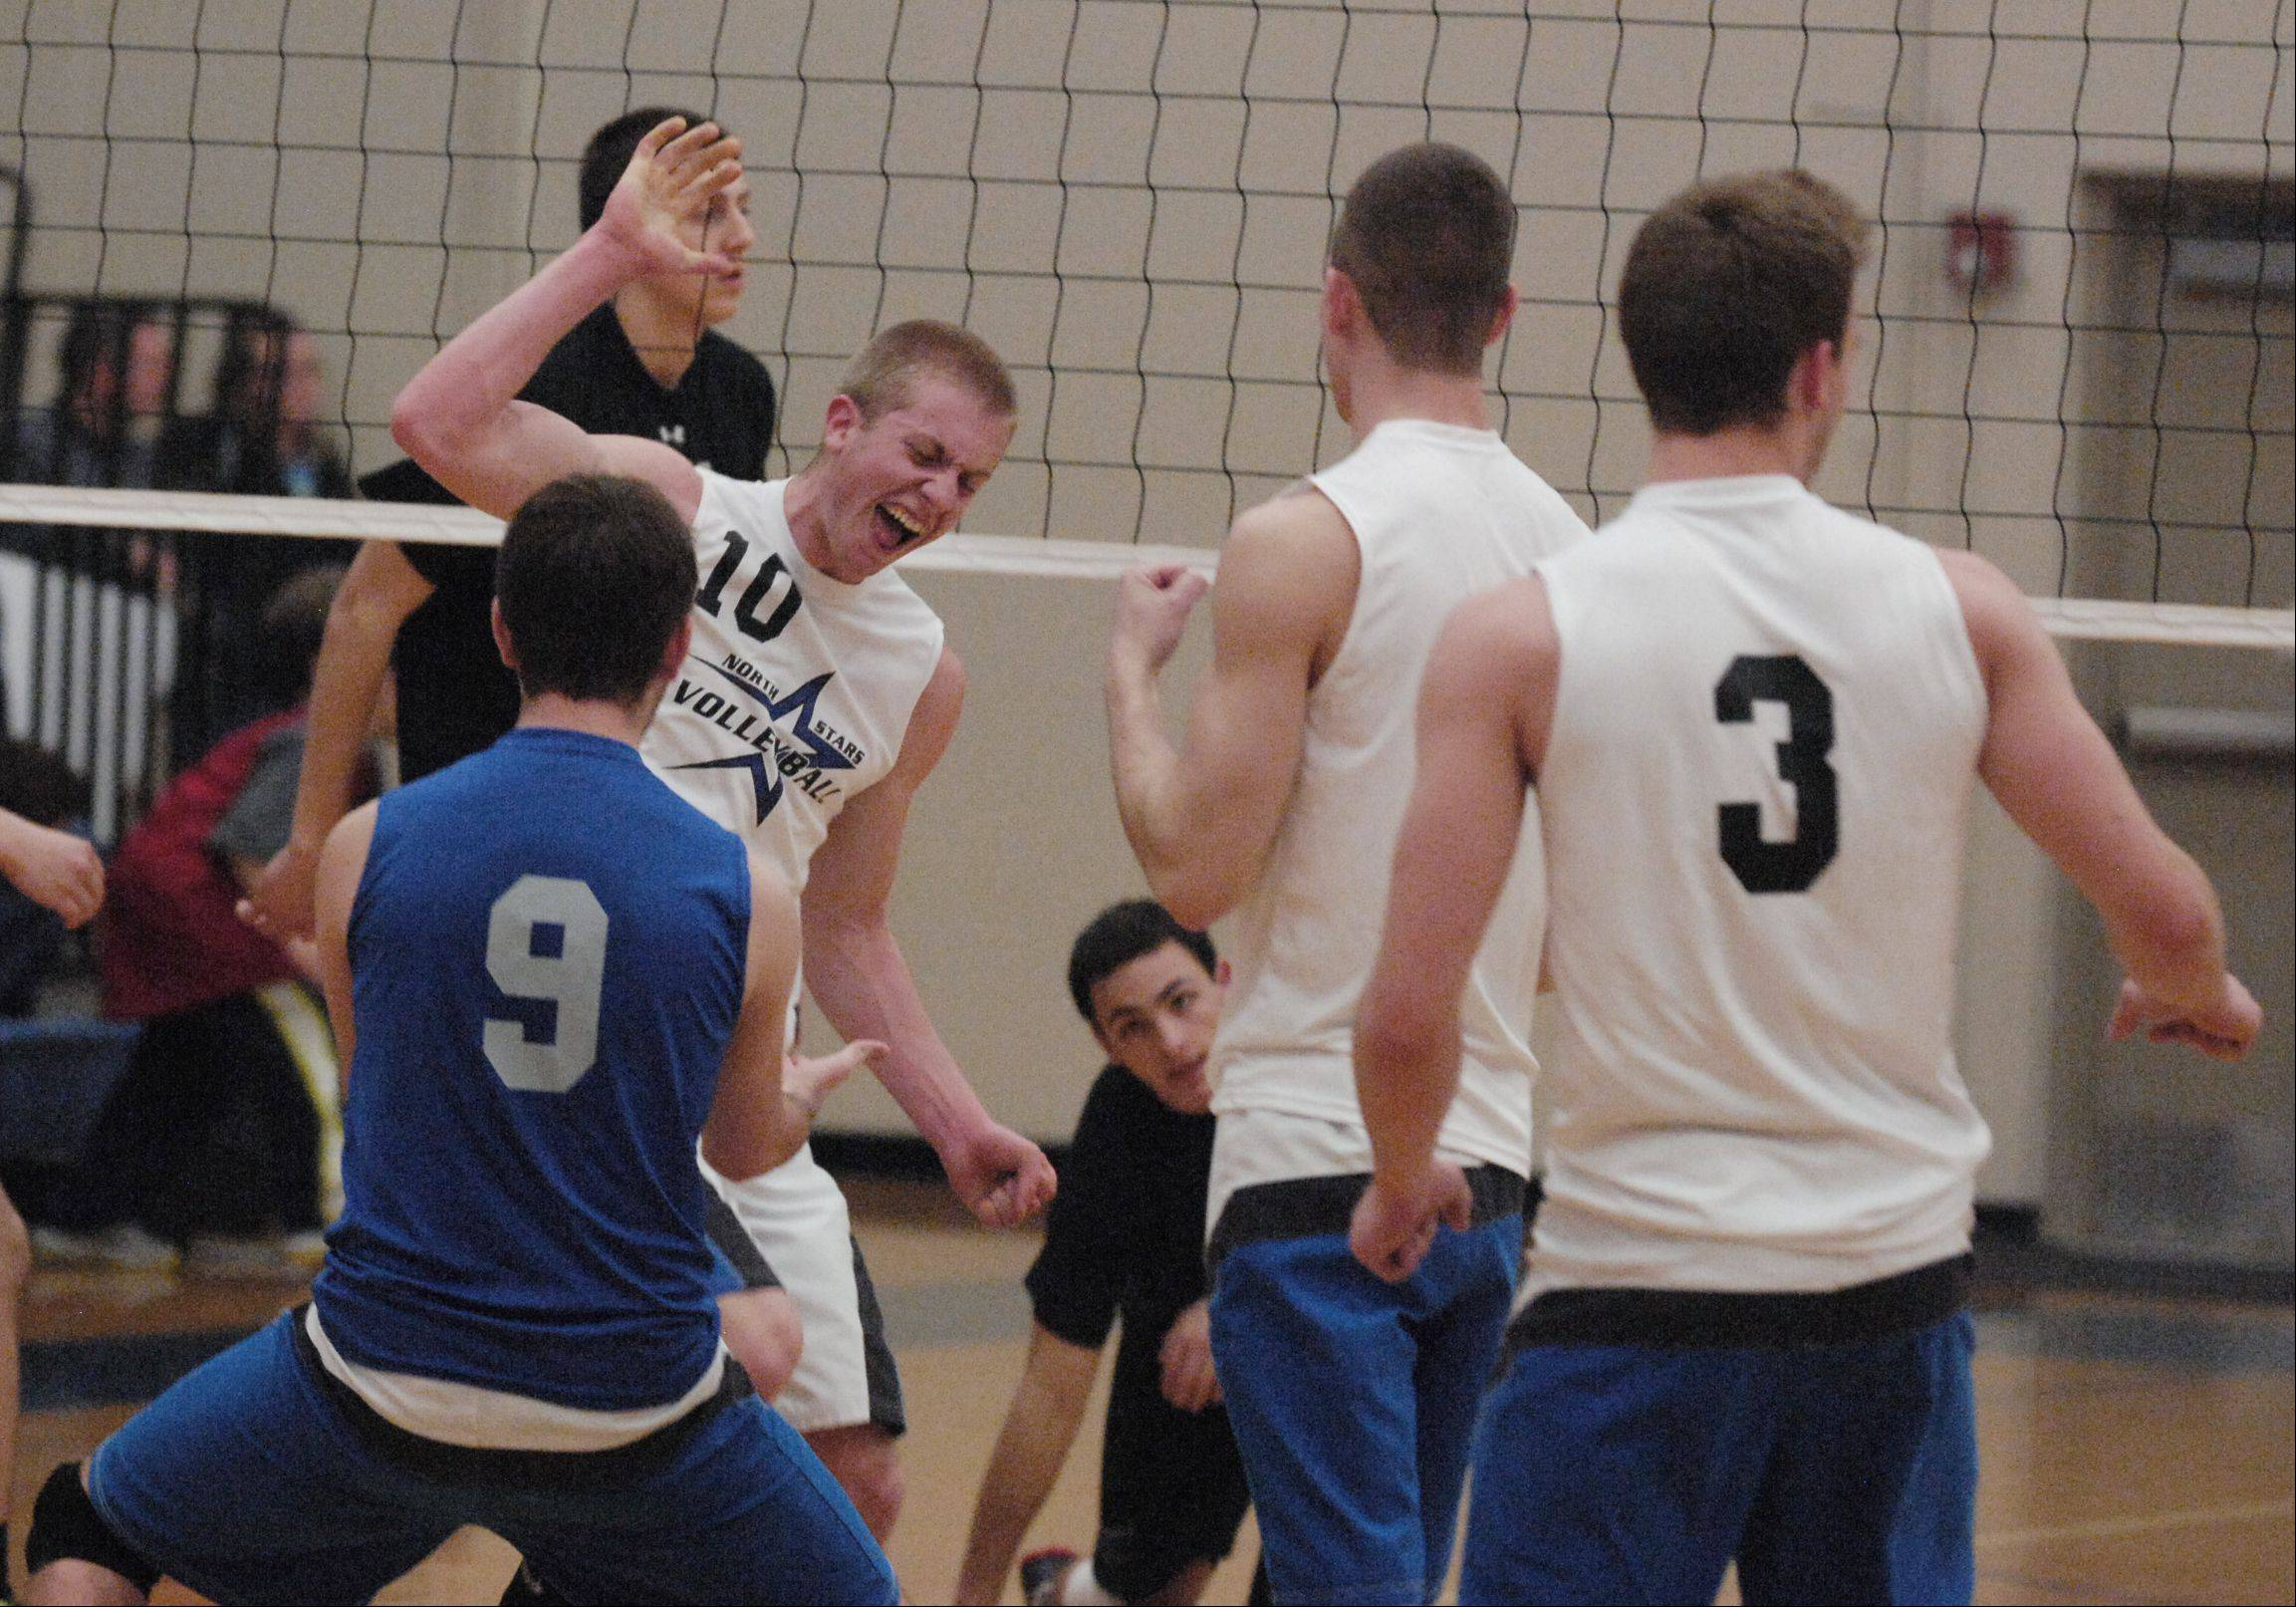 St. Charles North's Kevin Beach celebrates during Monday's volleyball match against St. Francis in Wheaton.